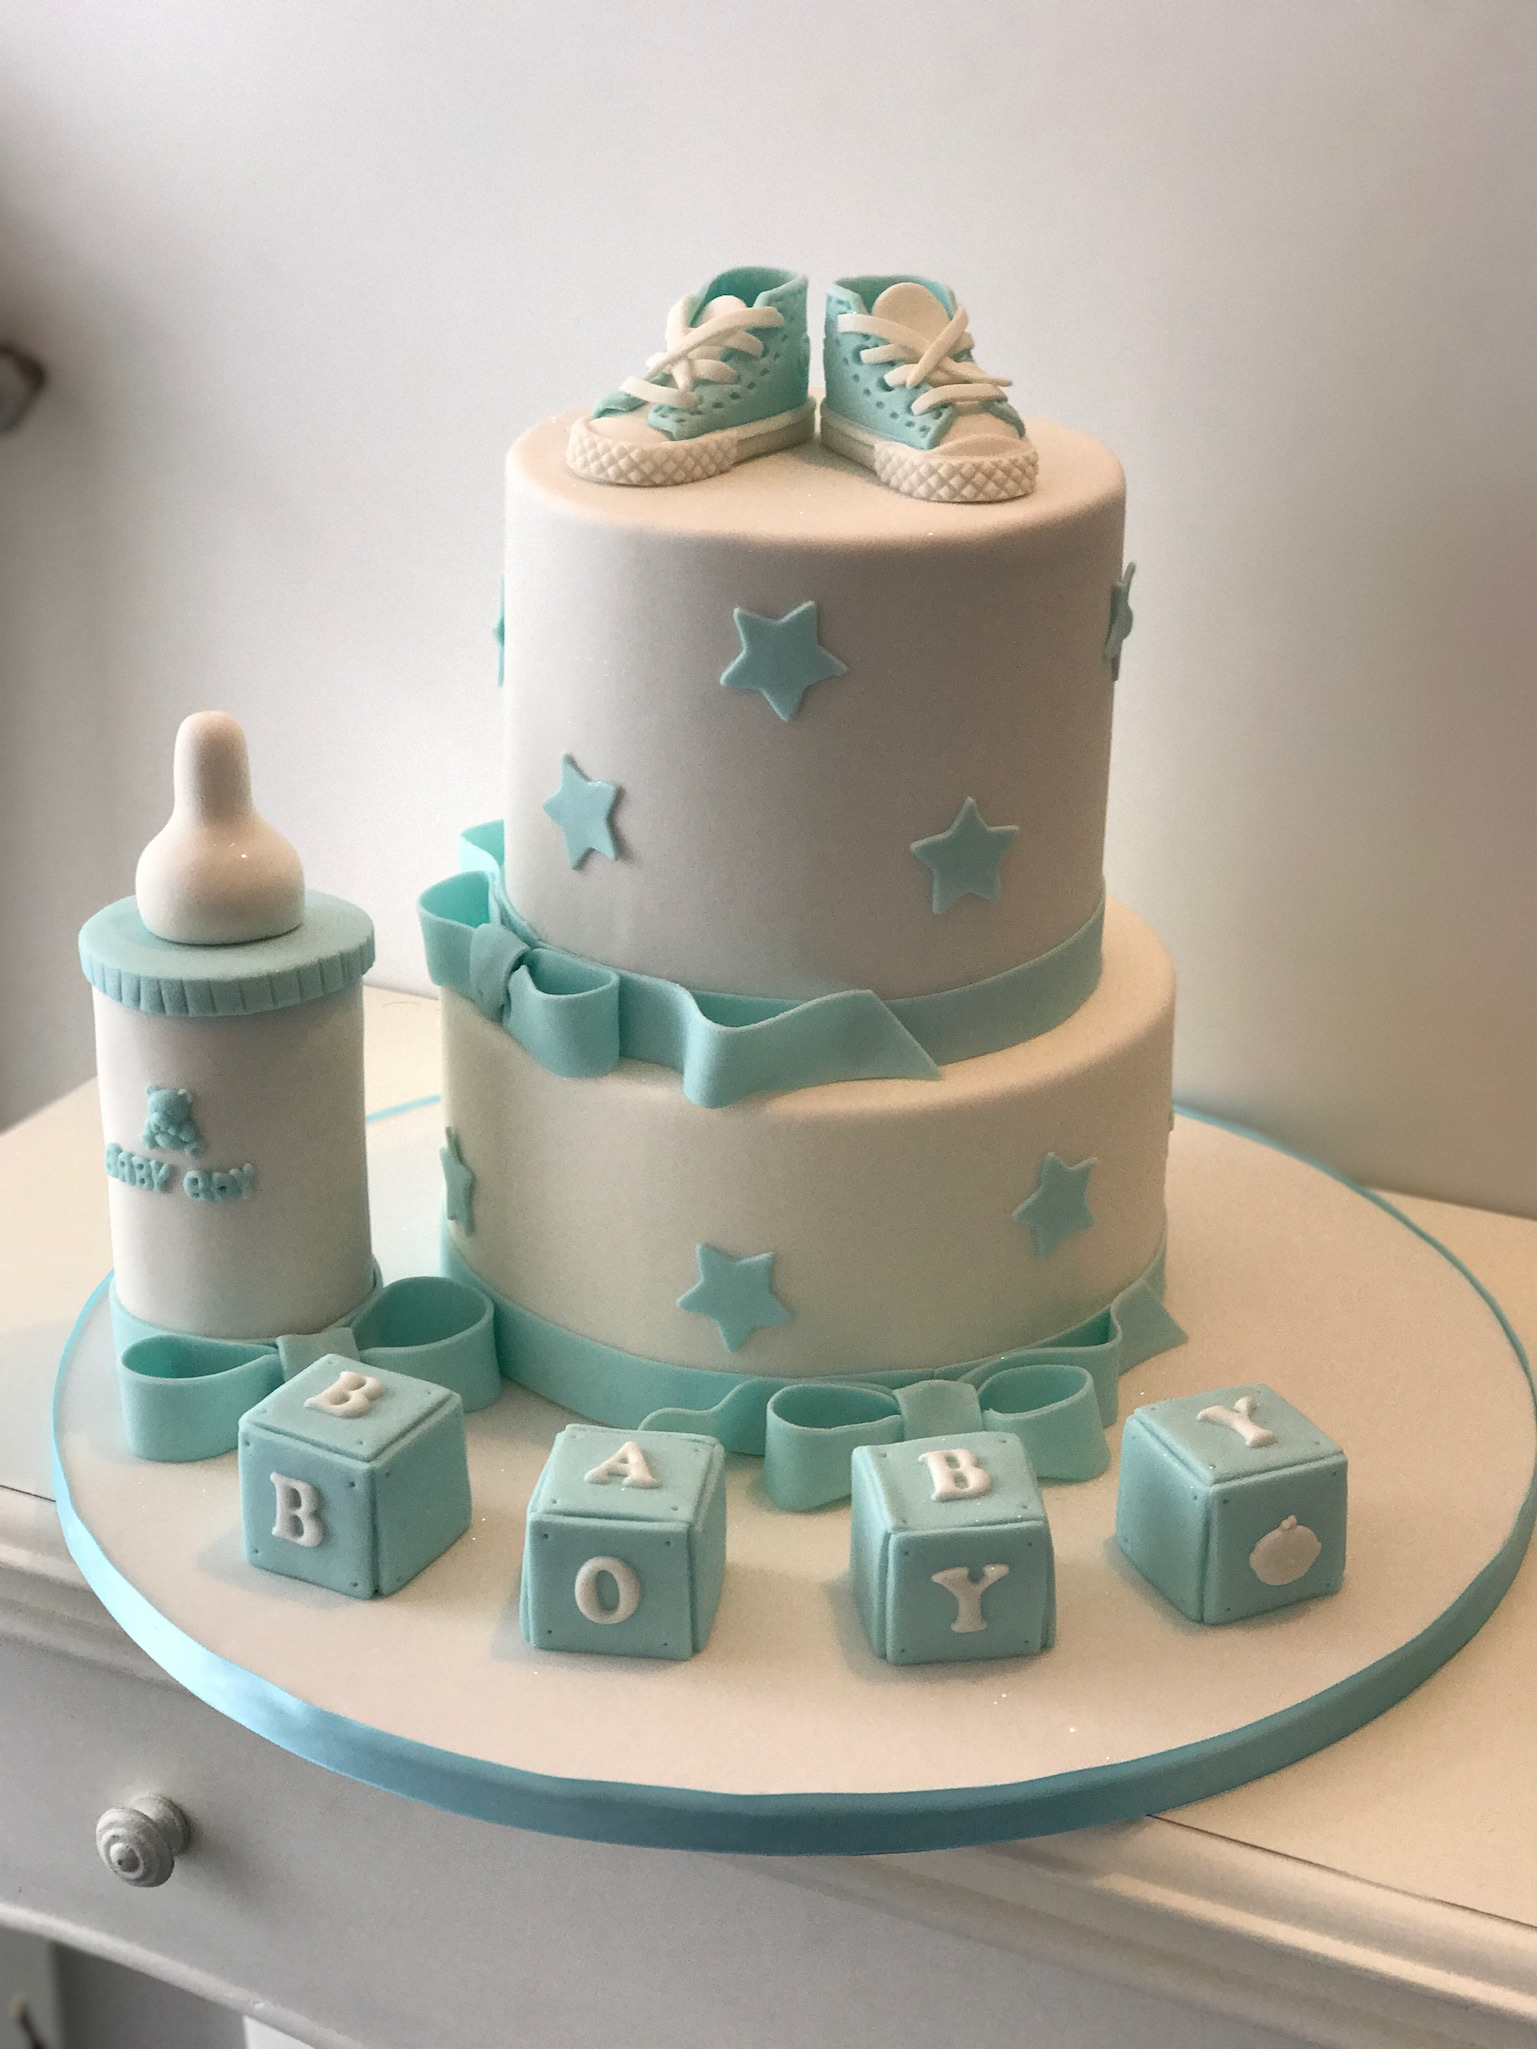 Latelier Des Sucreries Cake Design